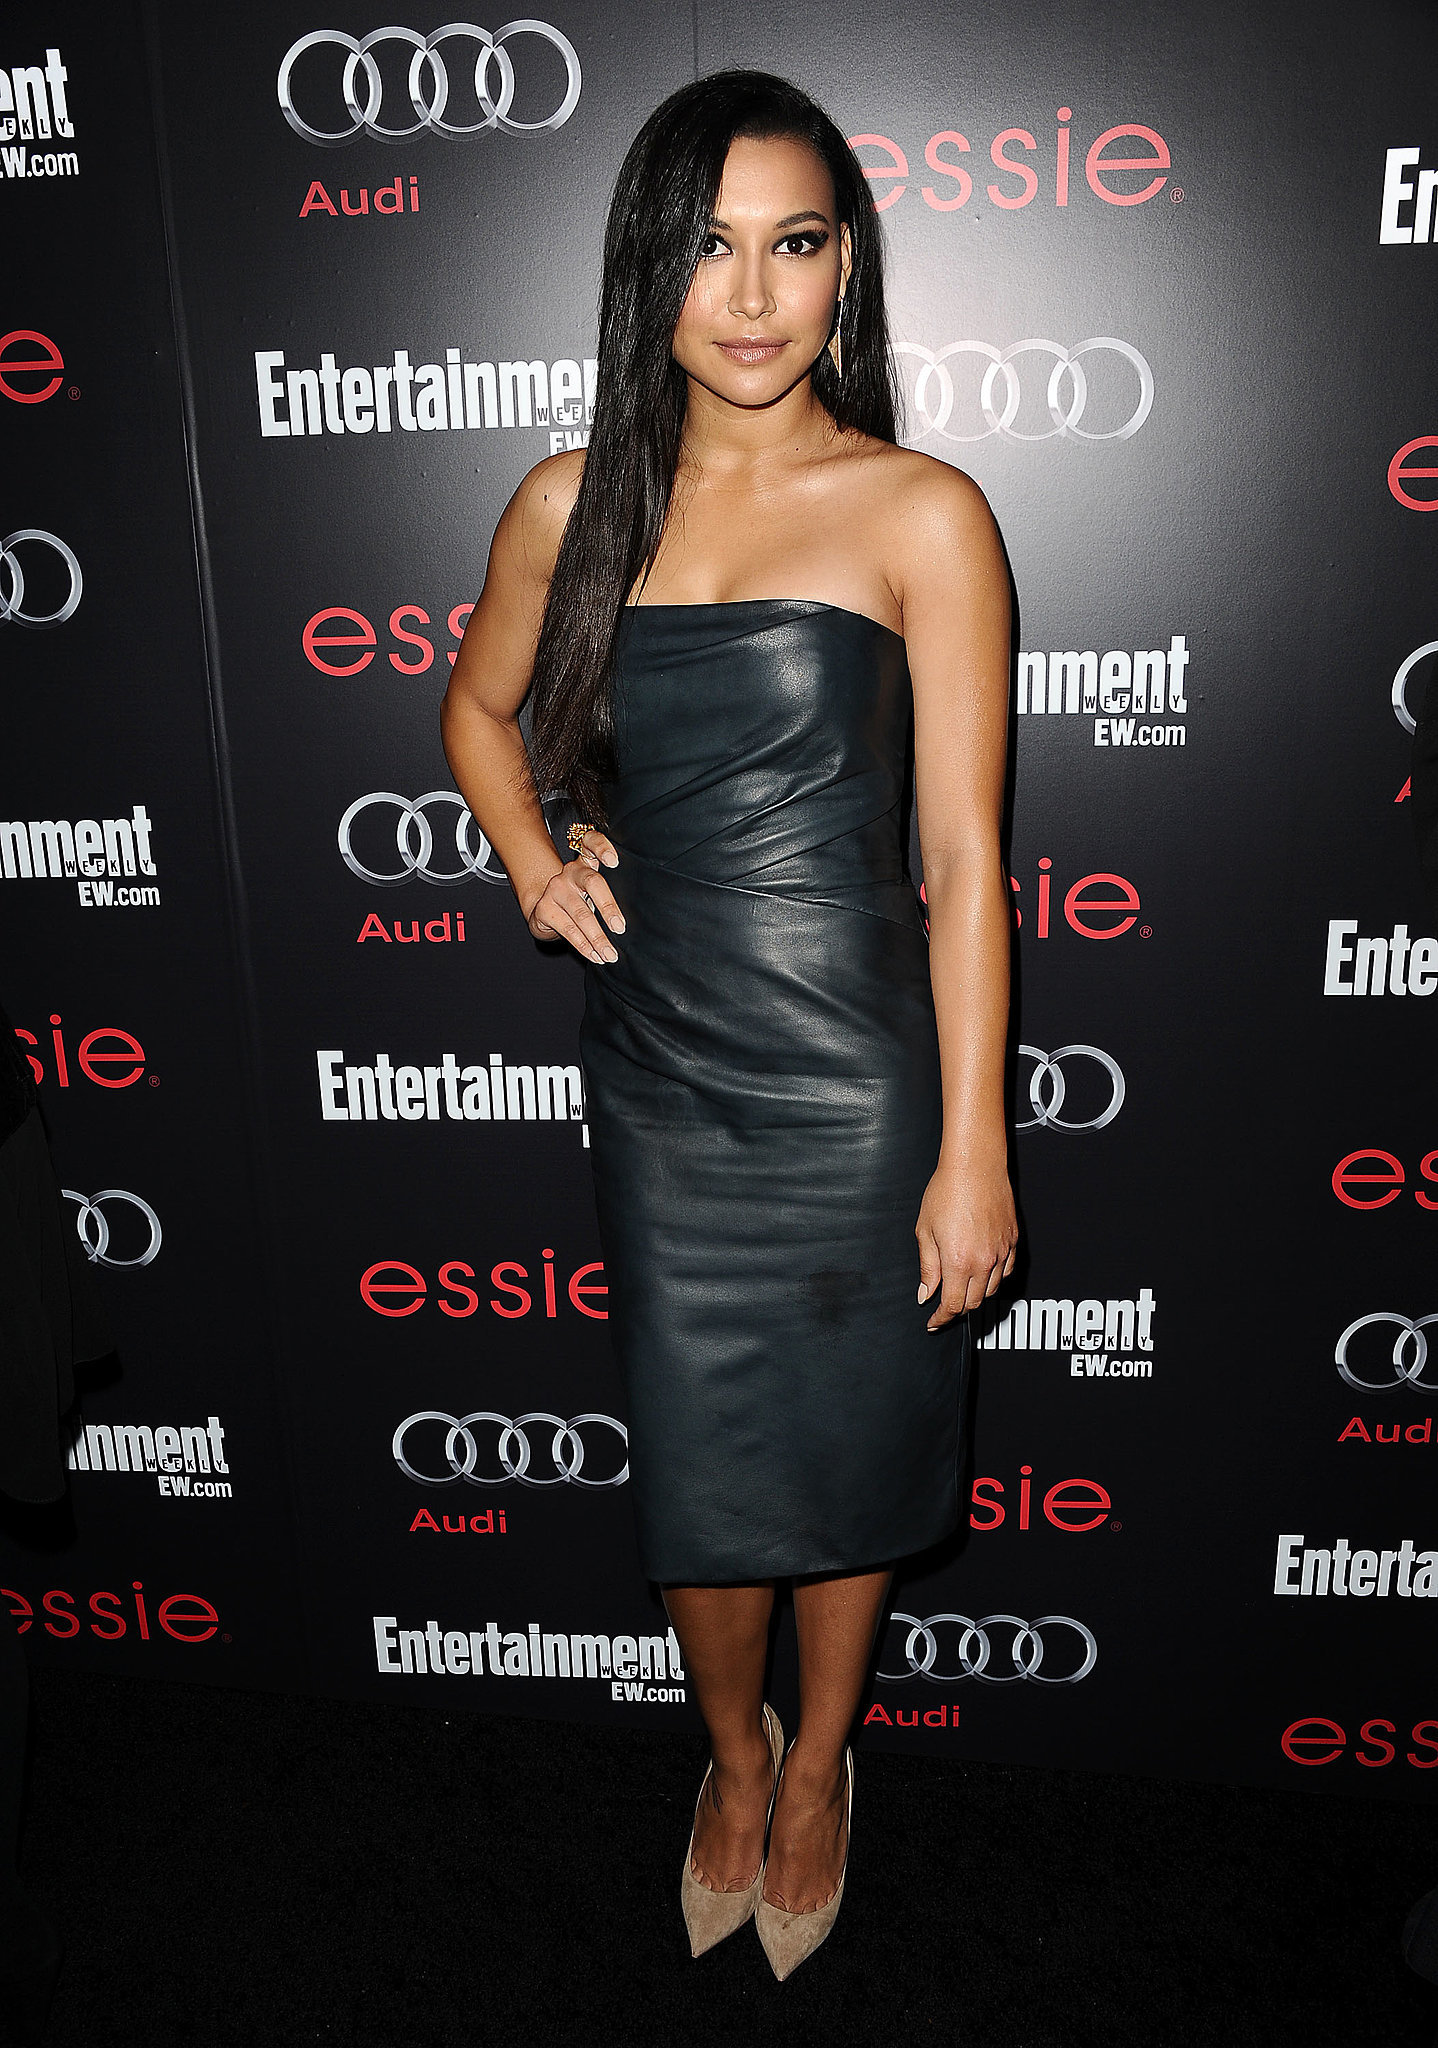 When She Wore a Leather Tube Dress to Chateau Marmont